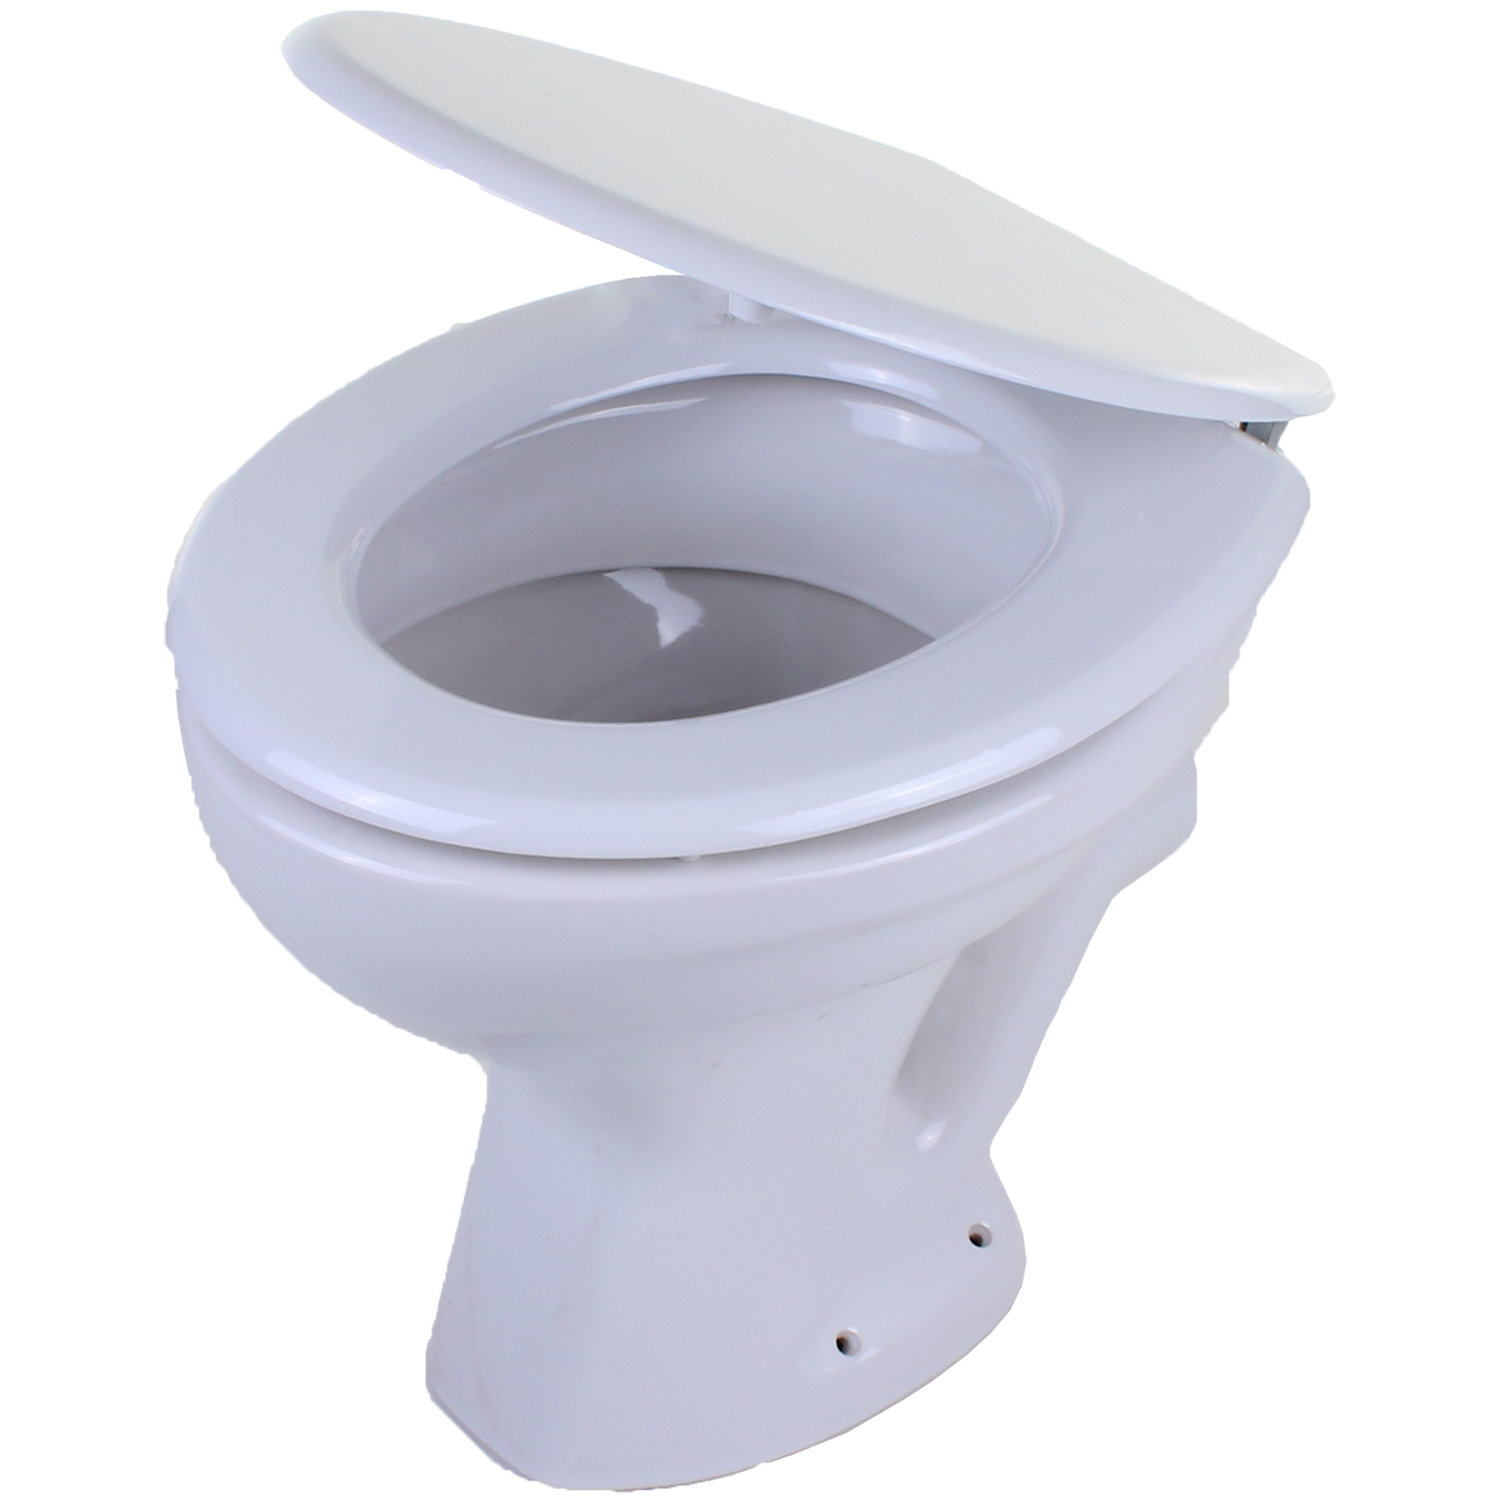 18 Universal Toilet Seat Bathroom WC Easy Fit Including Fittings Wooden